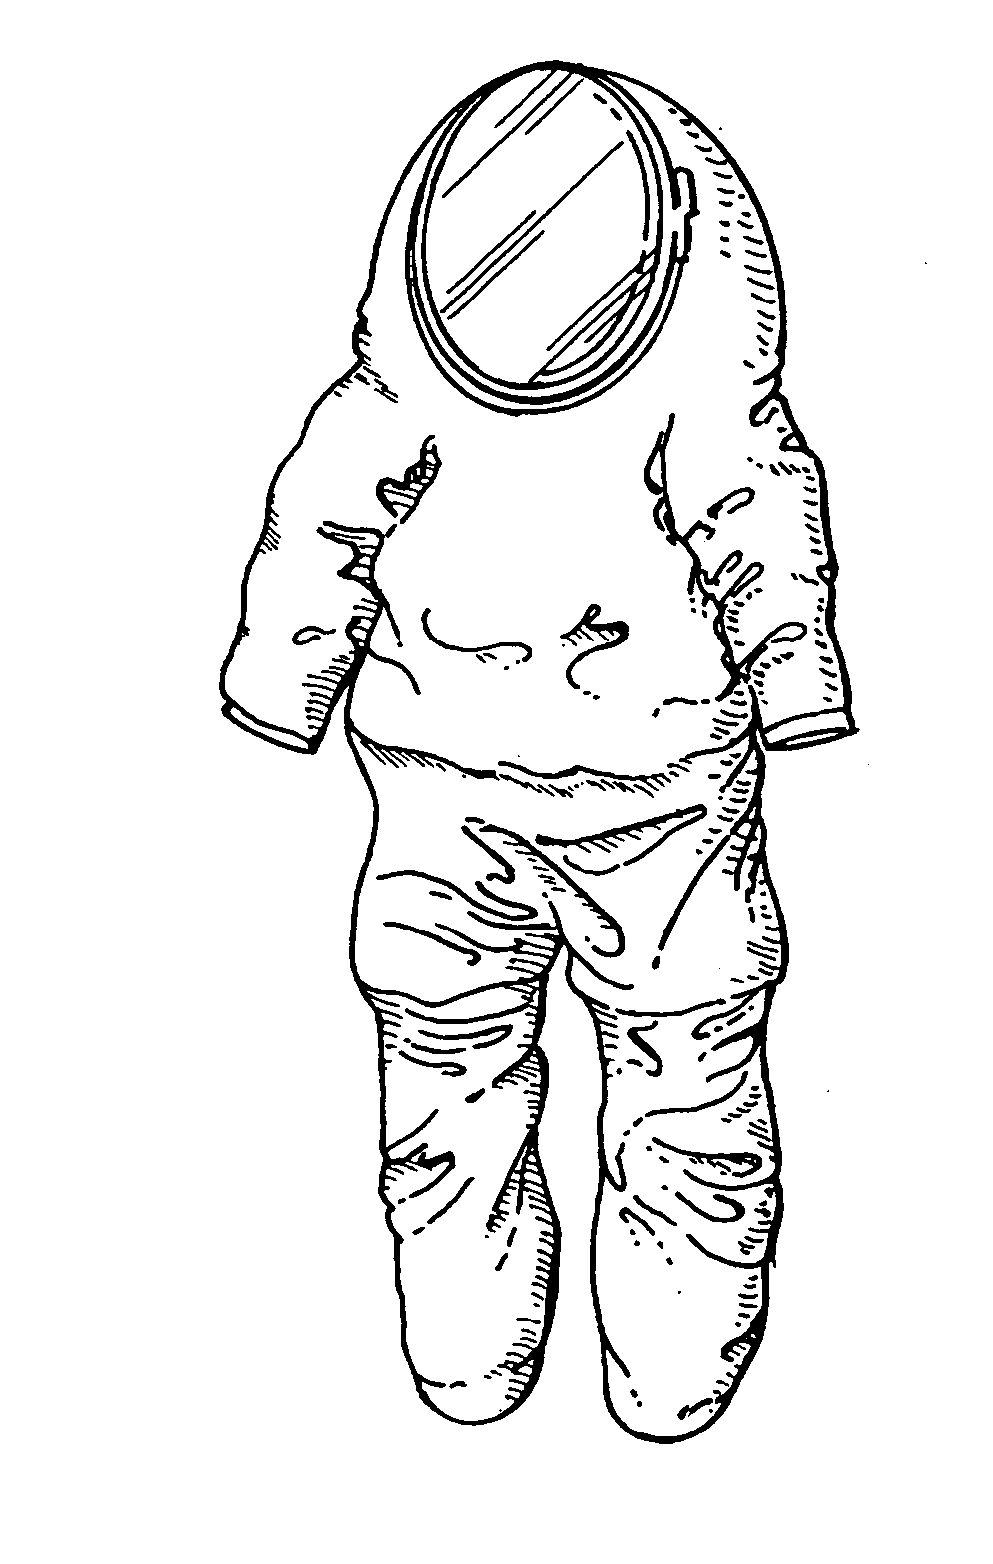 space suit drawing space suit samgarlandillustrations space drawing suit